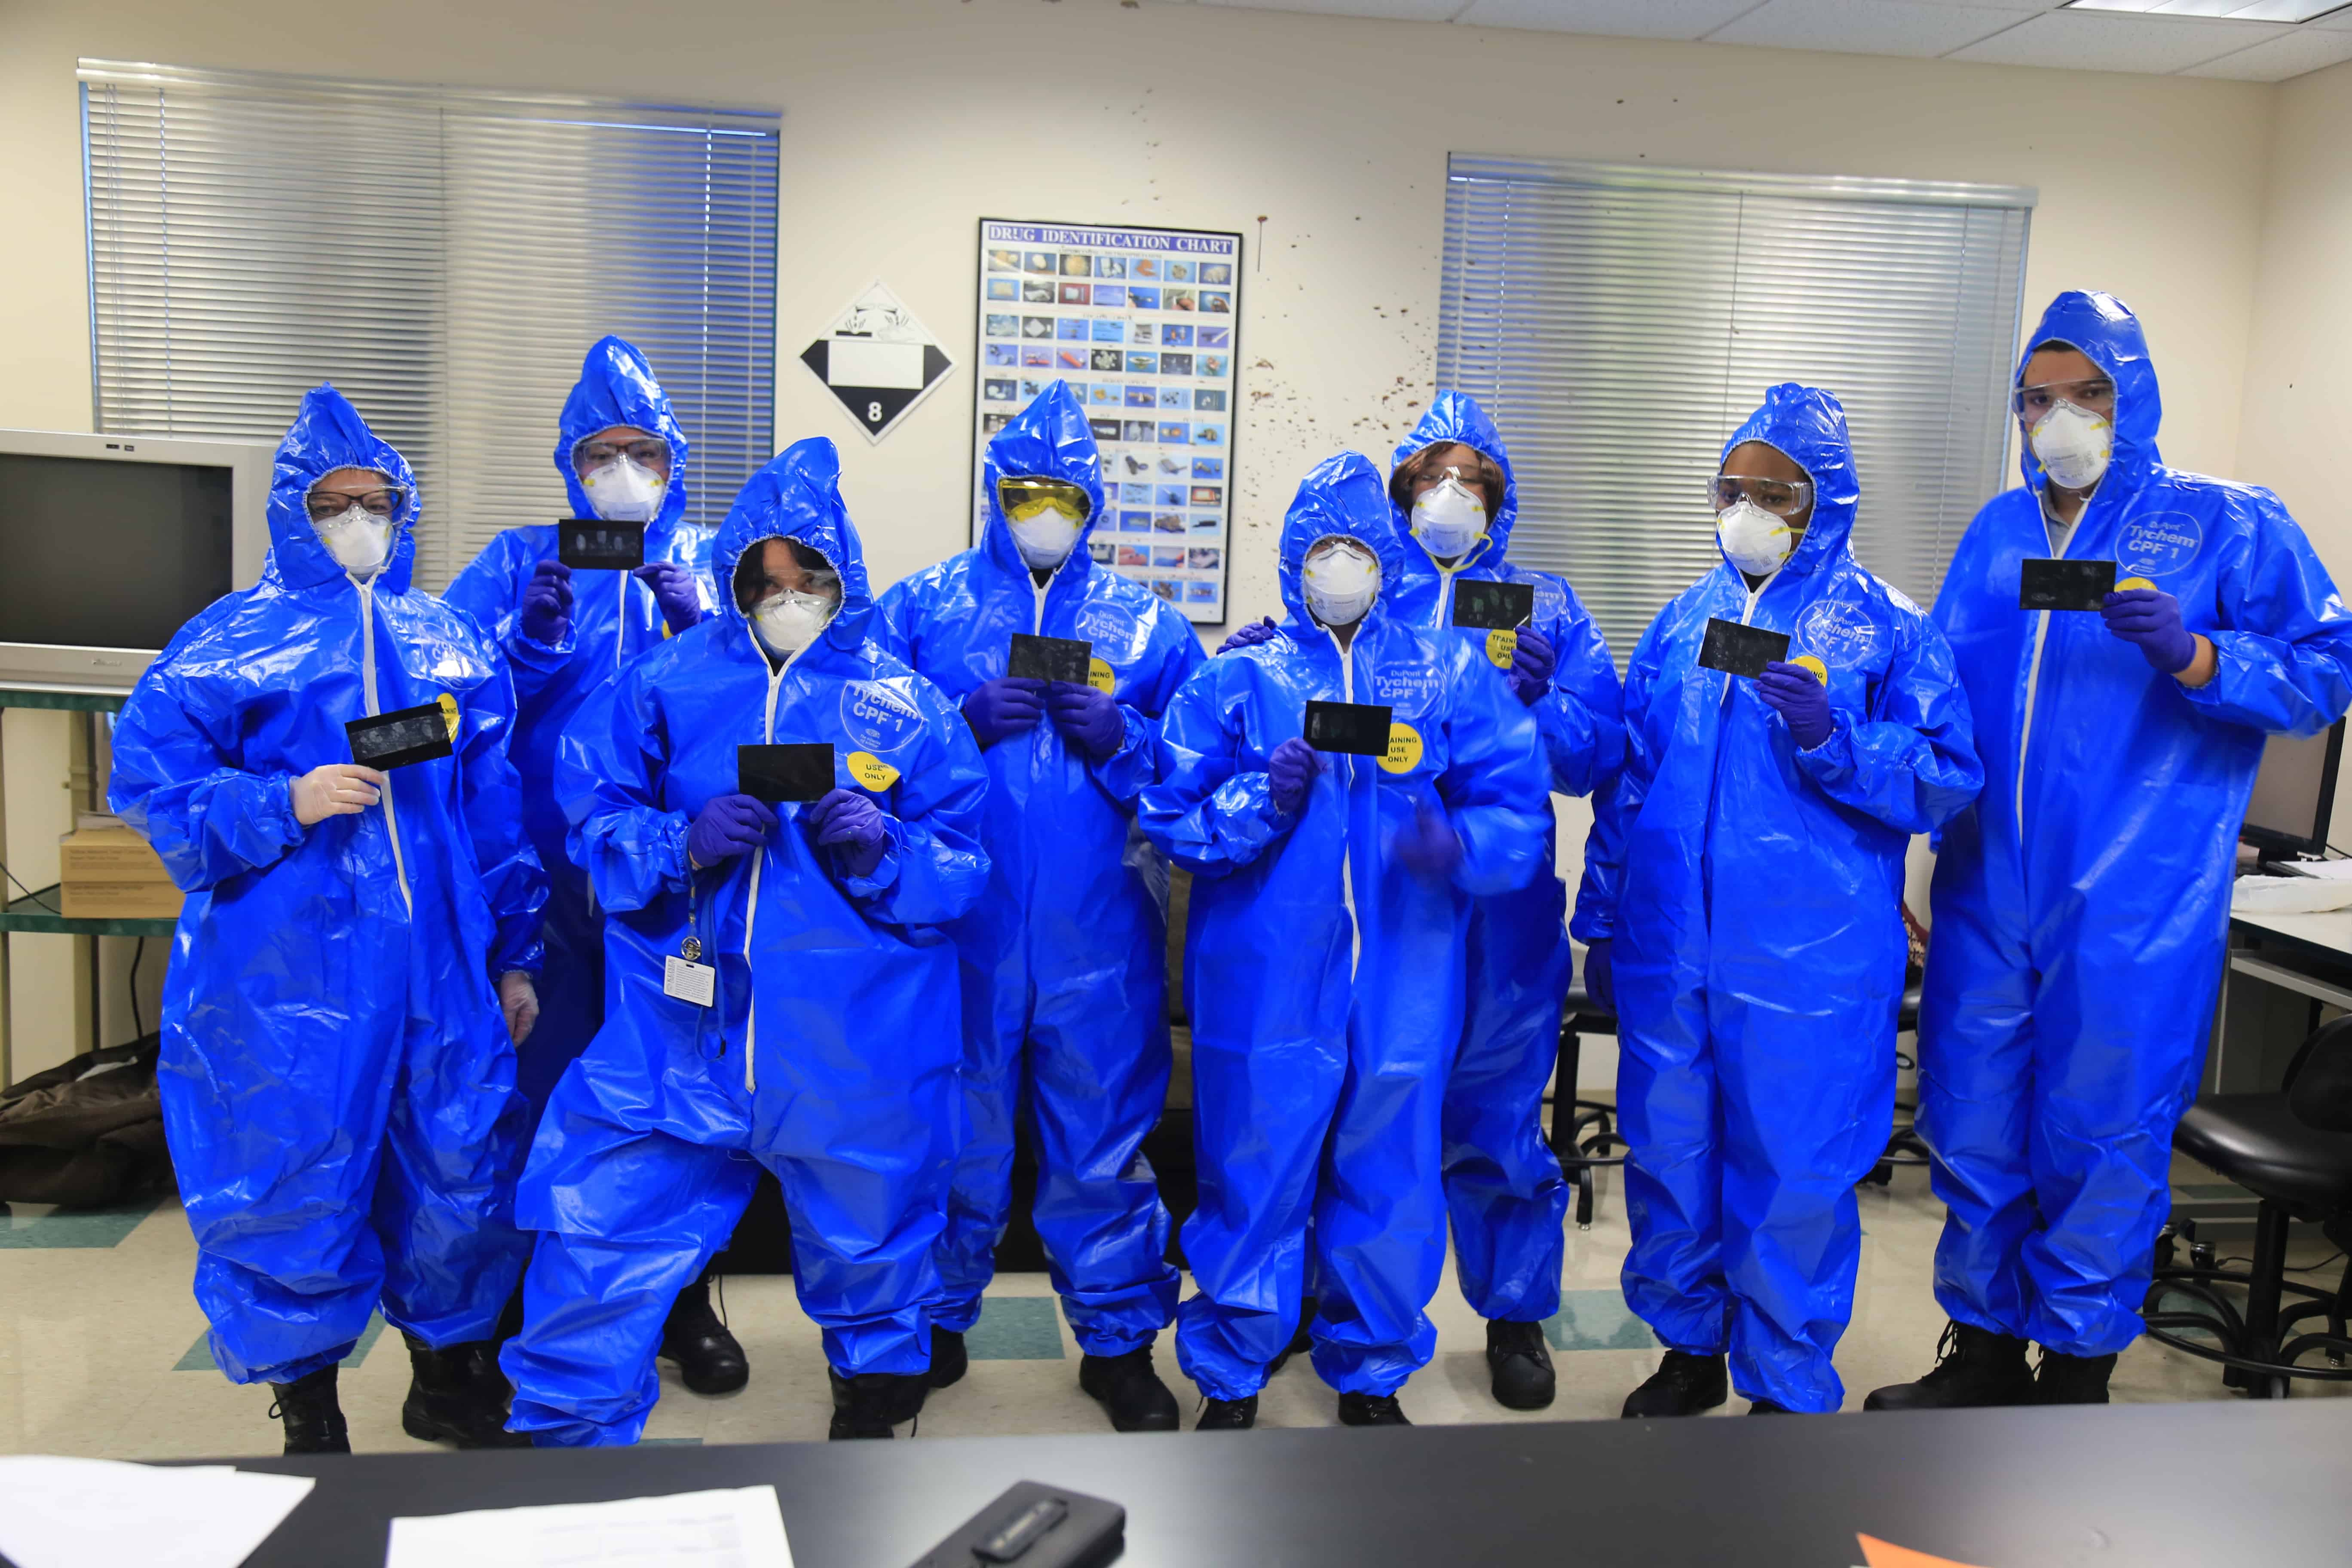 Crime Scene Technology Students in Sarasota are Suited for Their Profession